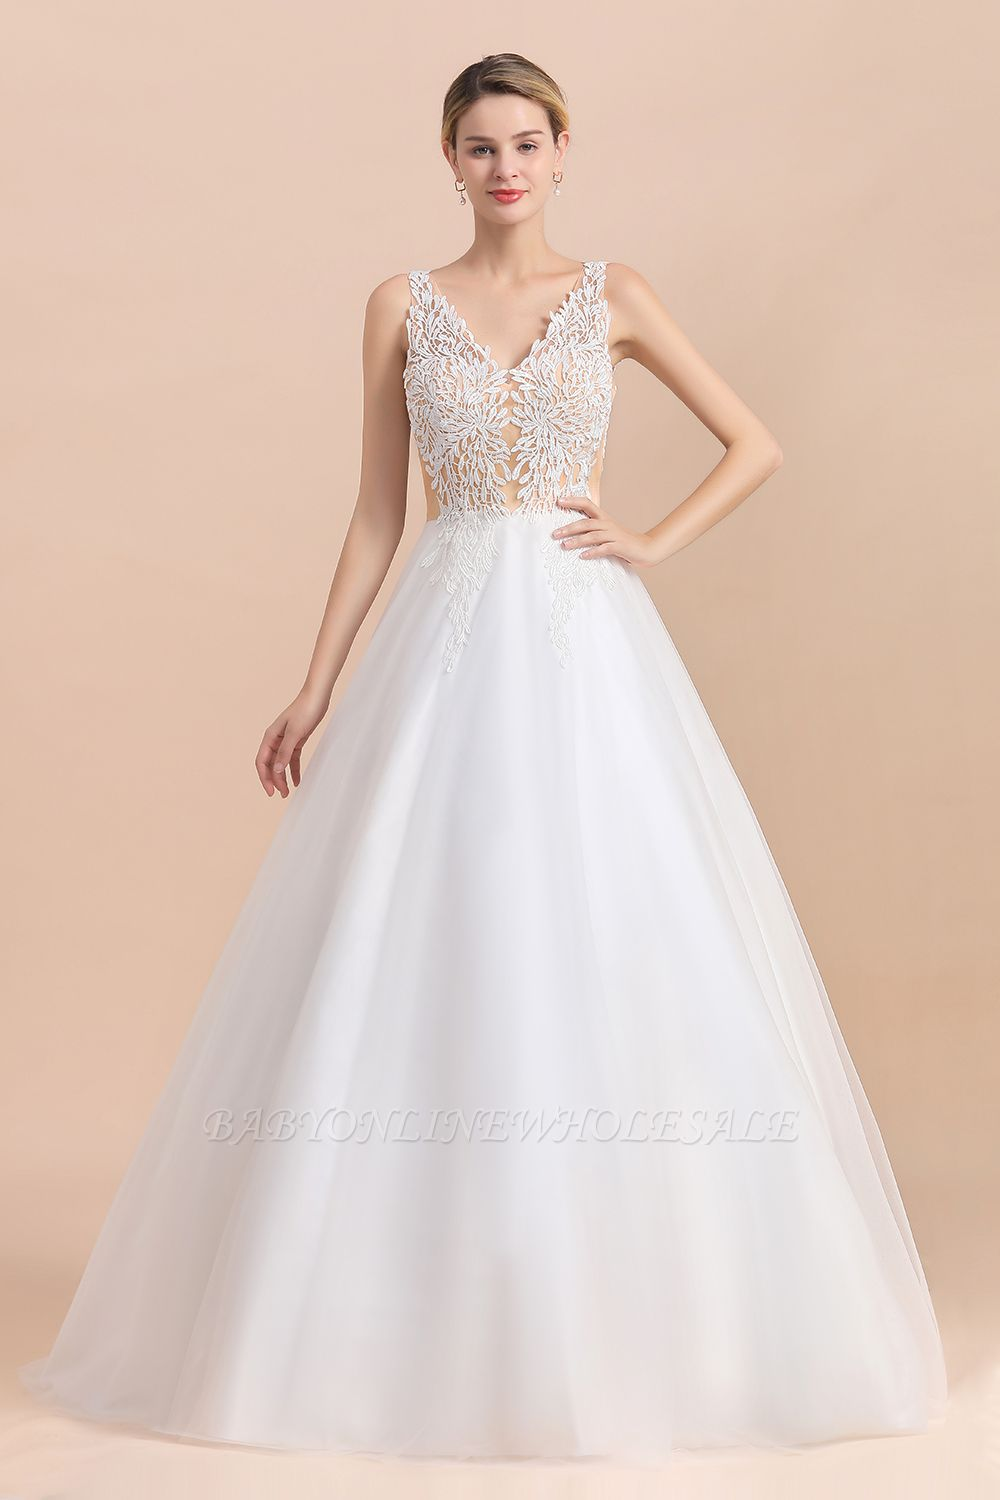 Elegant V-Neck Floral Lace A-line Wedding Dress Beach Sleeveless Tulle Church Dress